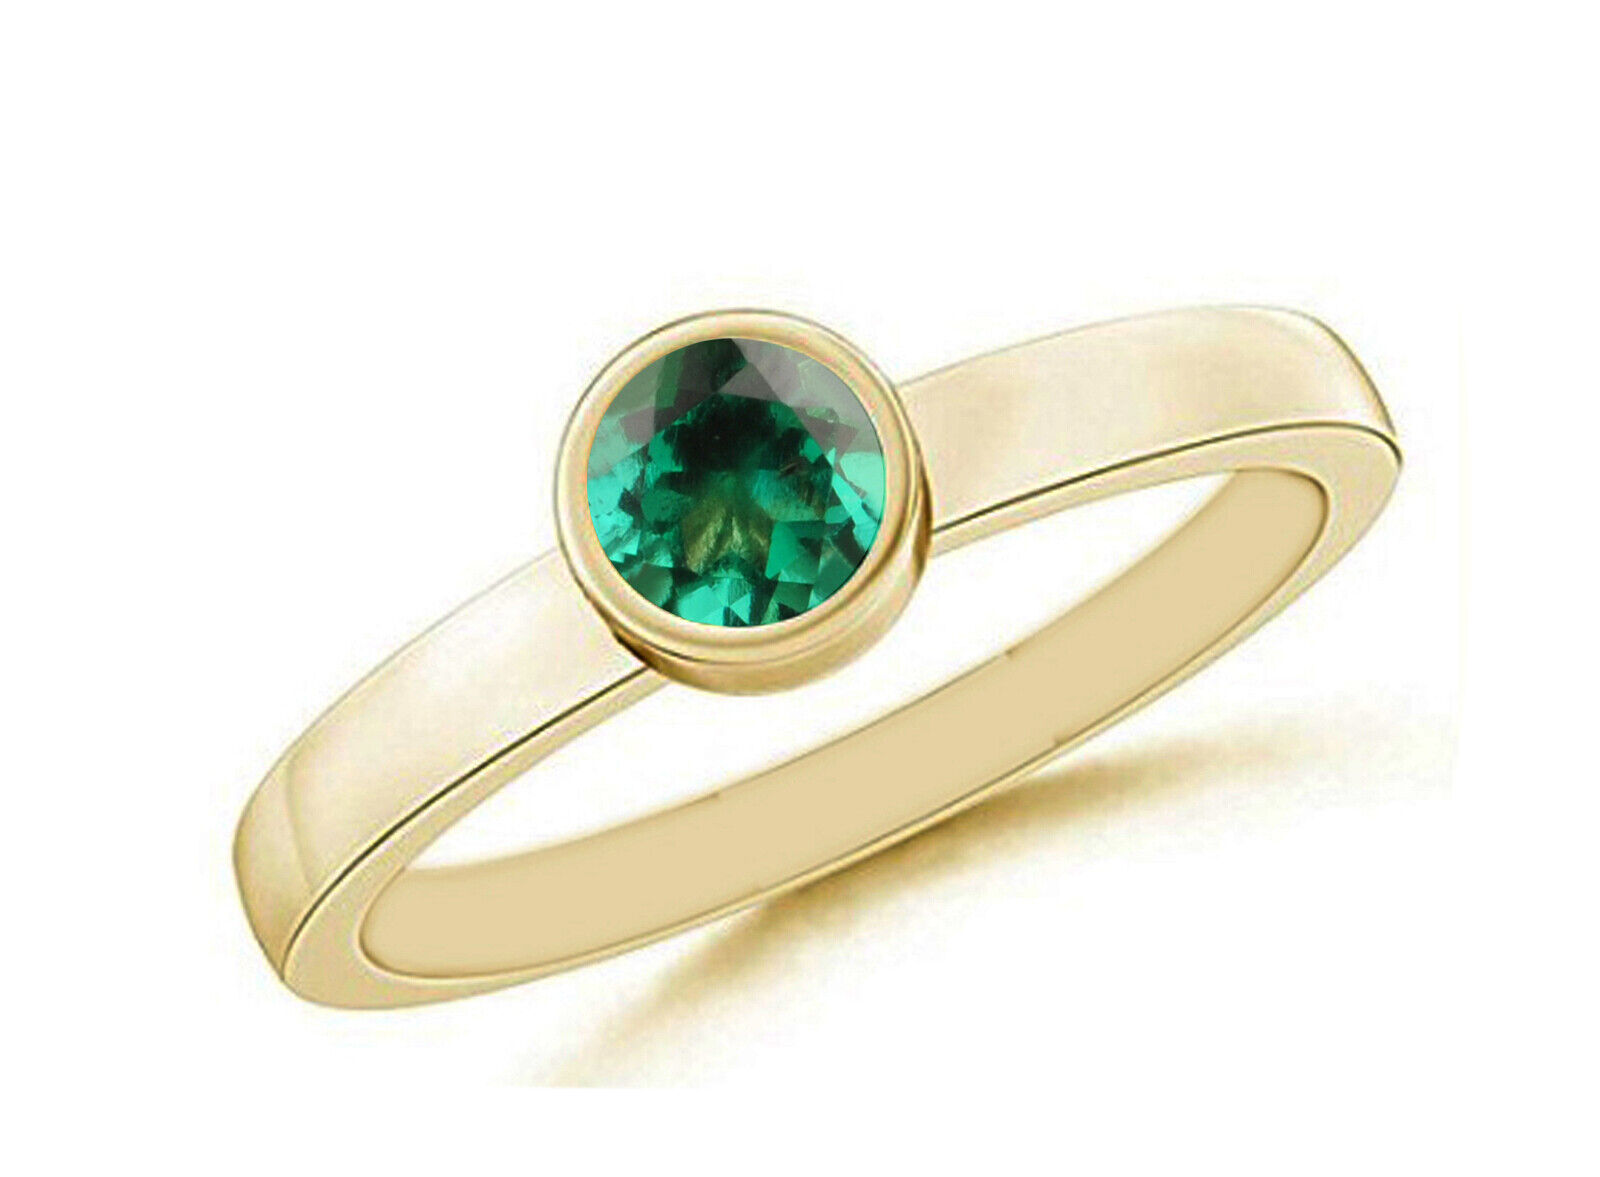 14KT Yellow gold Natural Zambian Emerald 1.10Ct Round Shape Solitaire Ring